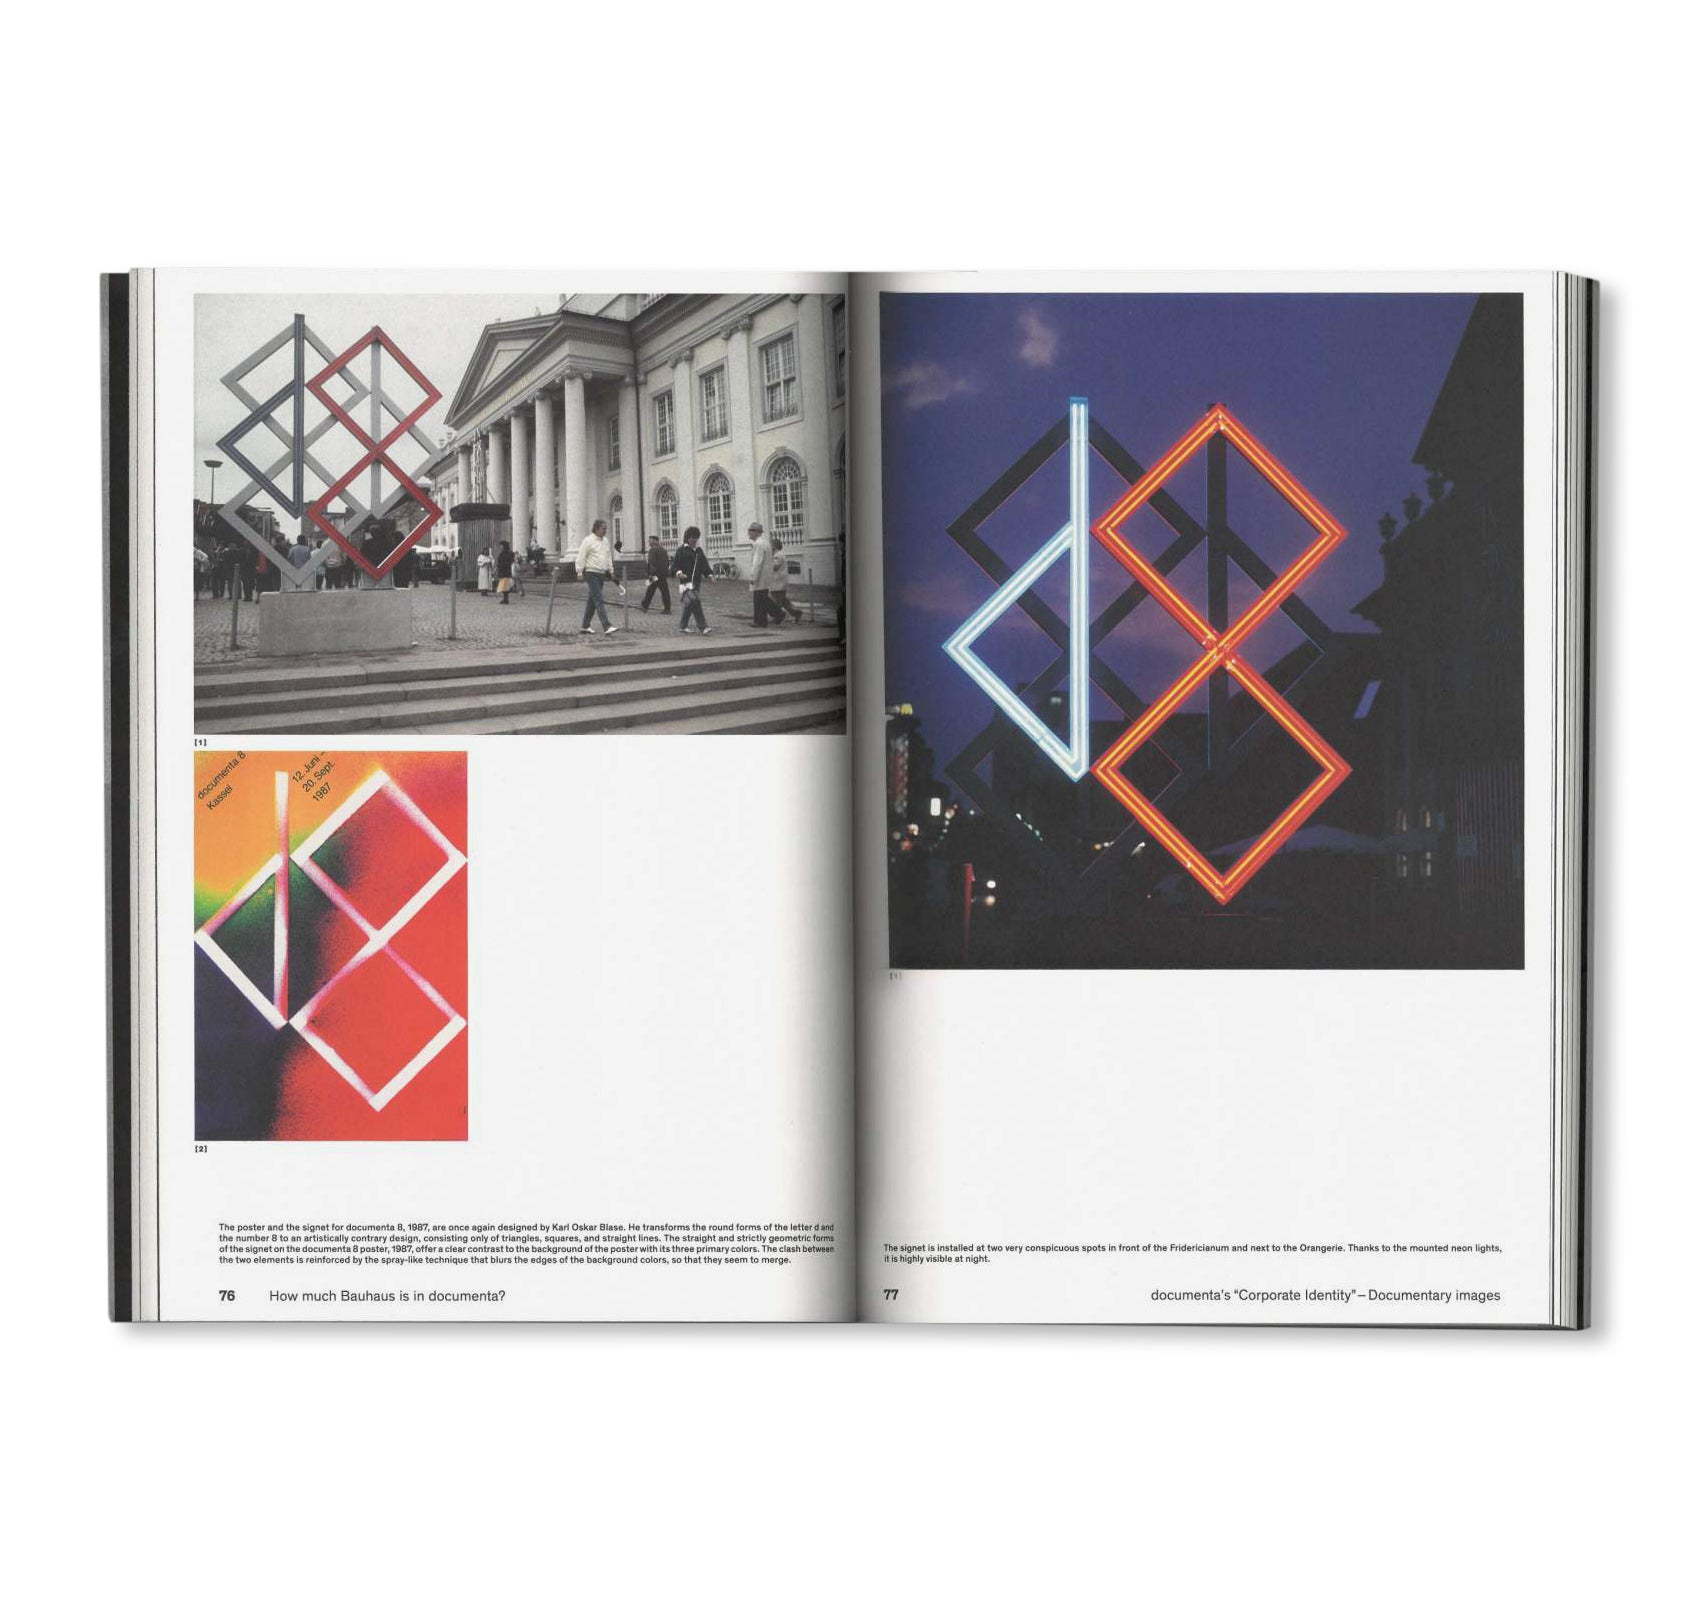 BAUHAUS / DOCUMENTA. VISION AND BRAND [ENGLISH EDITION]